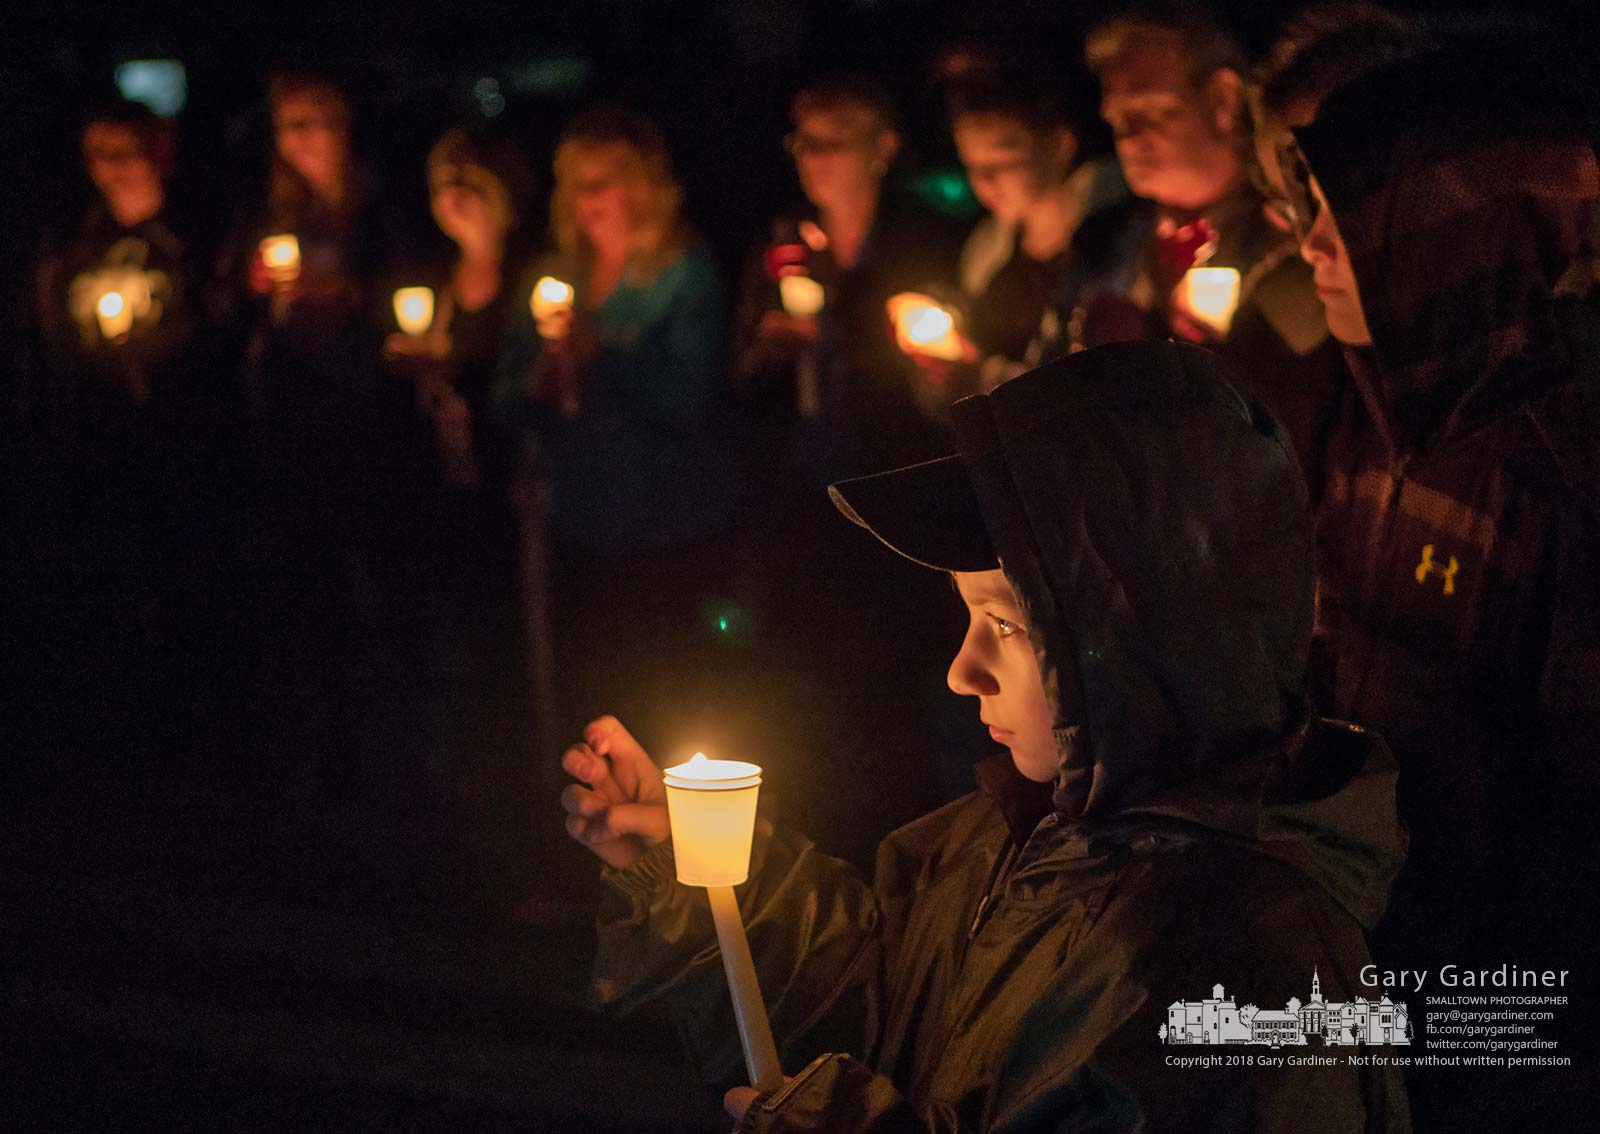 A boy listens at a candle-lit prayer vigil in the condominium complex where two Westerville police officers were killed responding to a dropped 911 call. My Final Photo for Feb. 15, 2018.